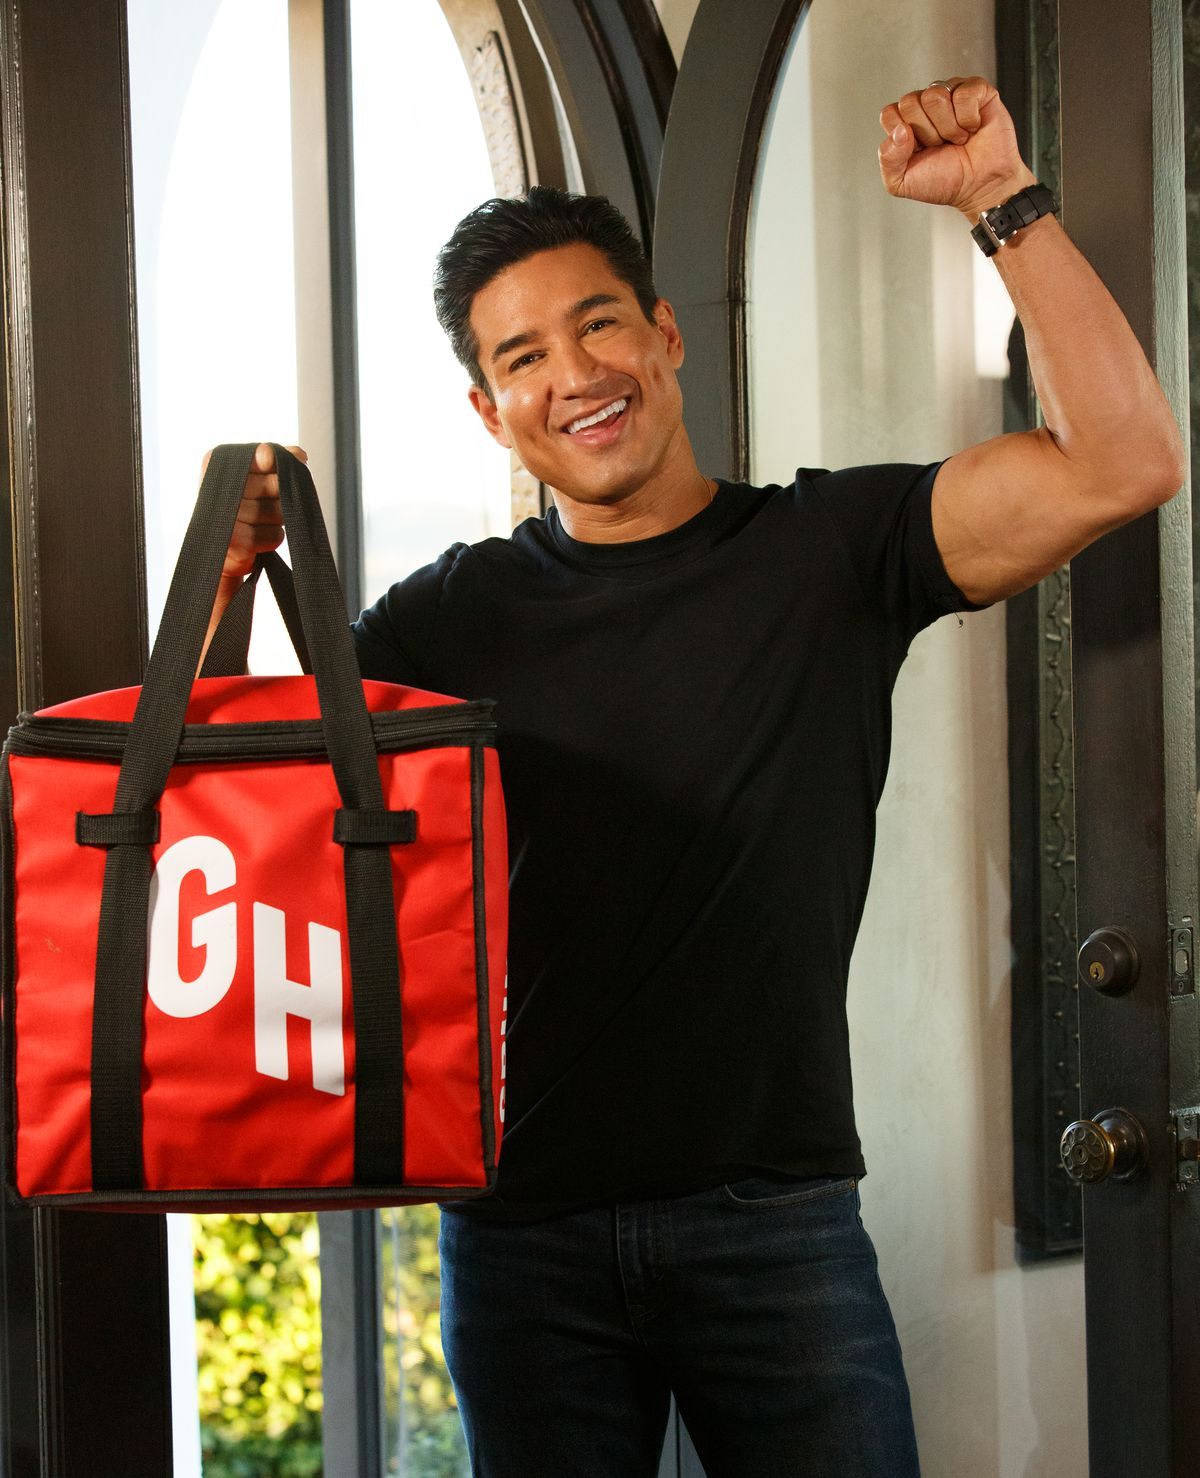 A smiling person flexing his left arm and holding a red insulated bag in the right hand.